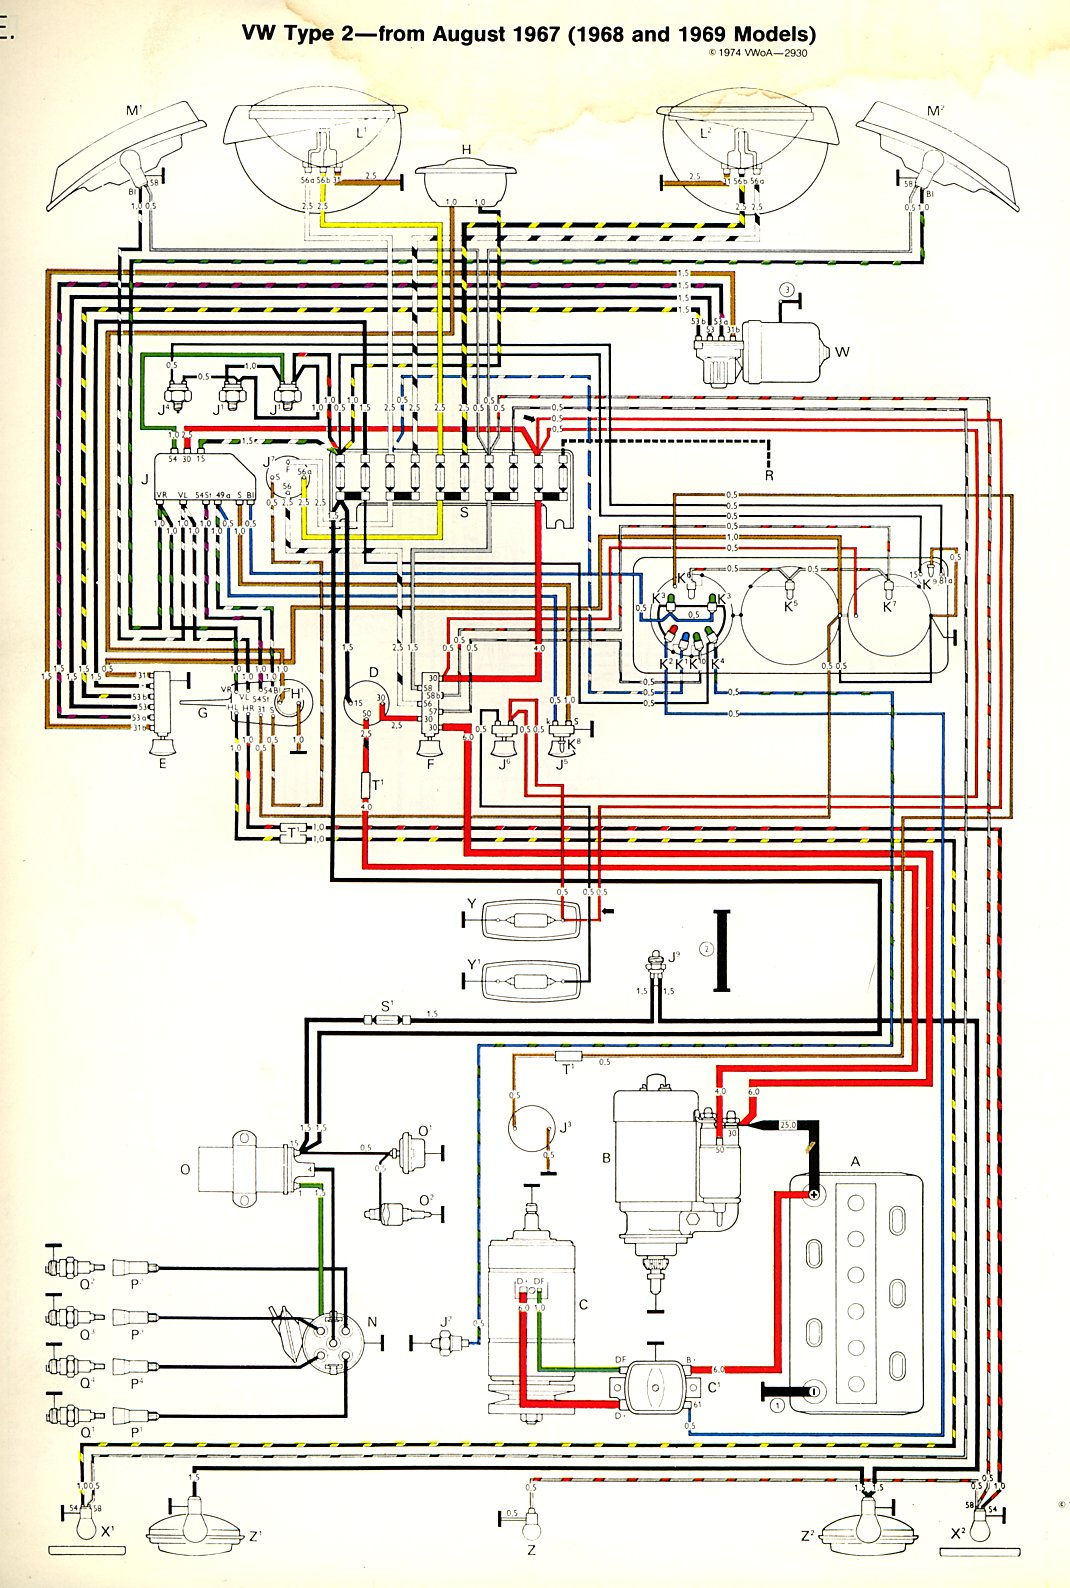 73 vw bus wiring diagrams wiring diagram database vw bug wiring-diagram thesamba com type 2 wiring diagrams 74 beetle wiring diagram for lights on 73 vw bus wiring diagrams